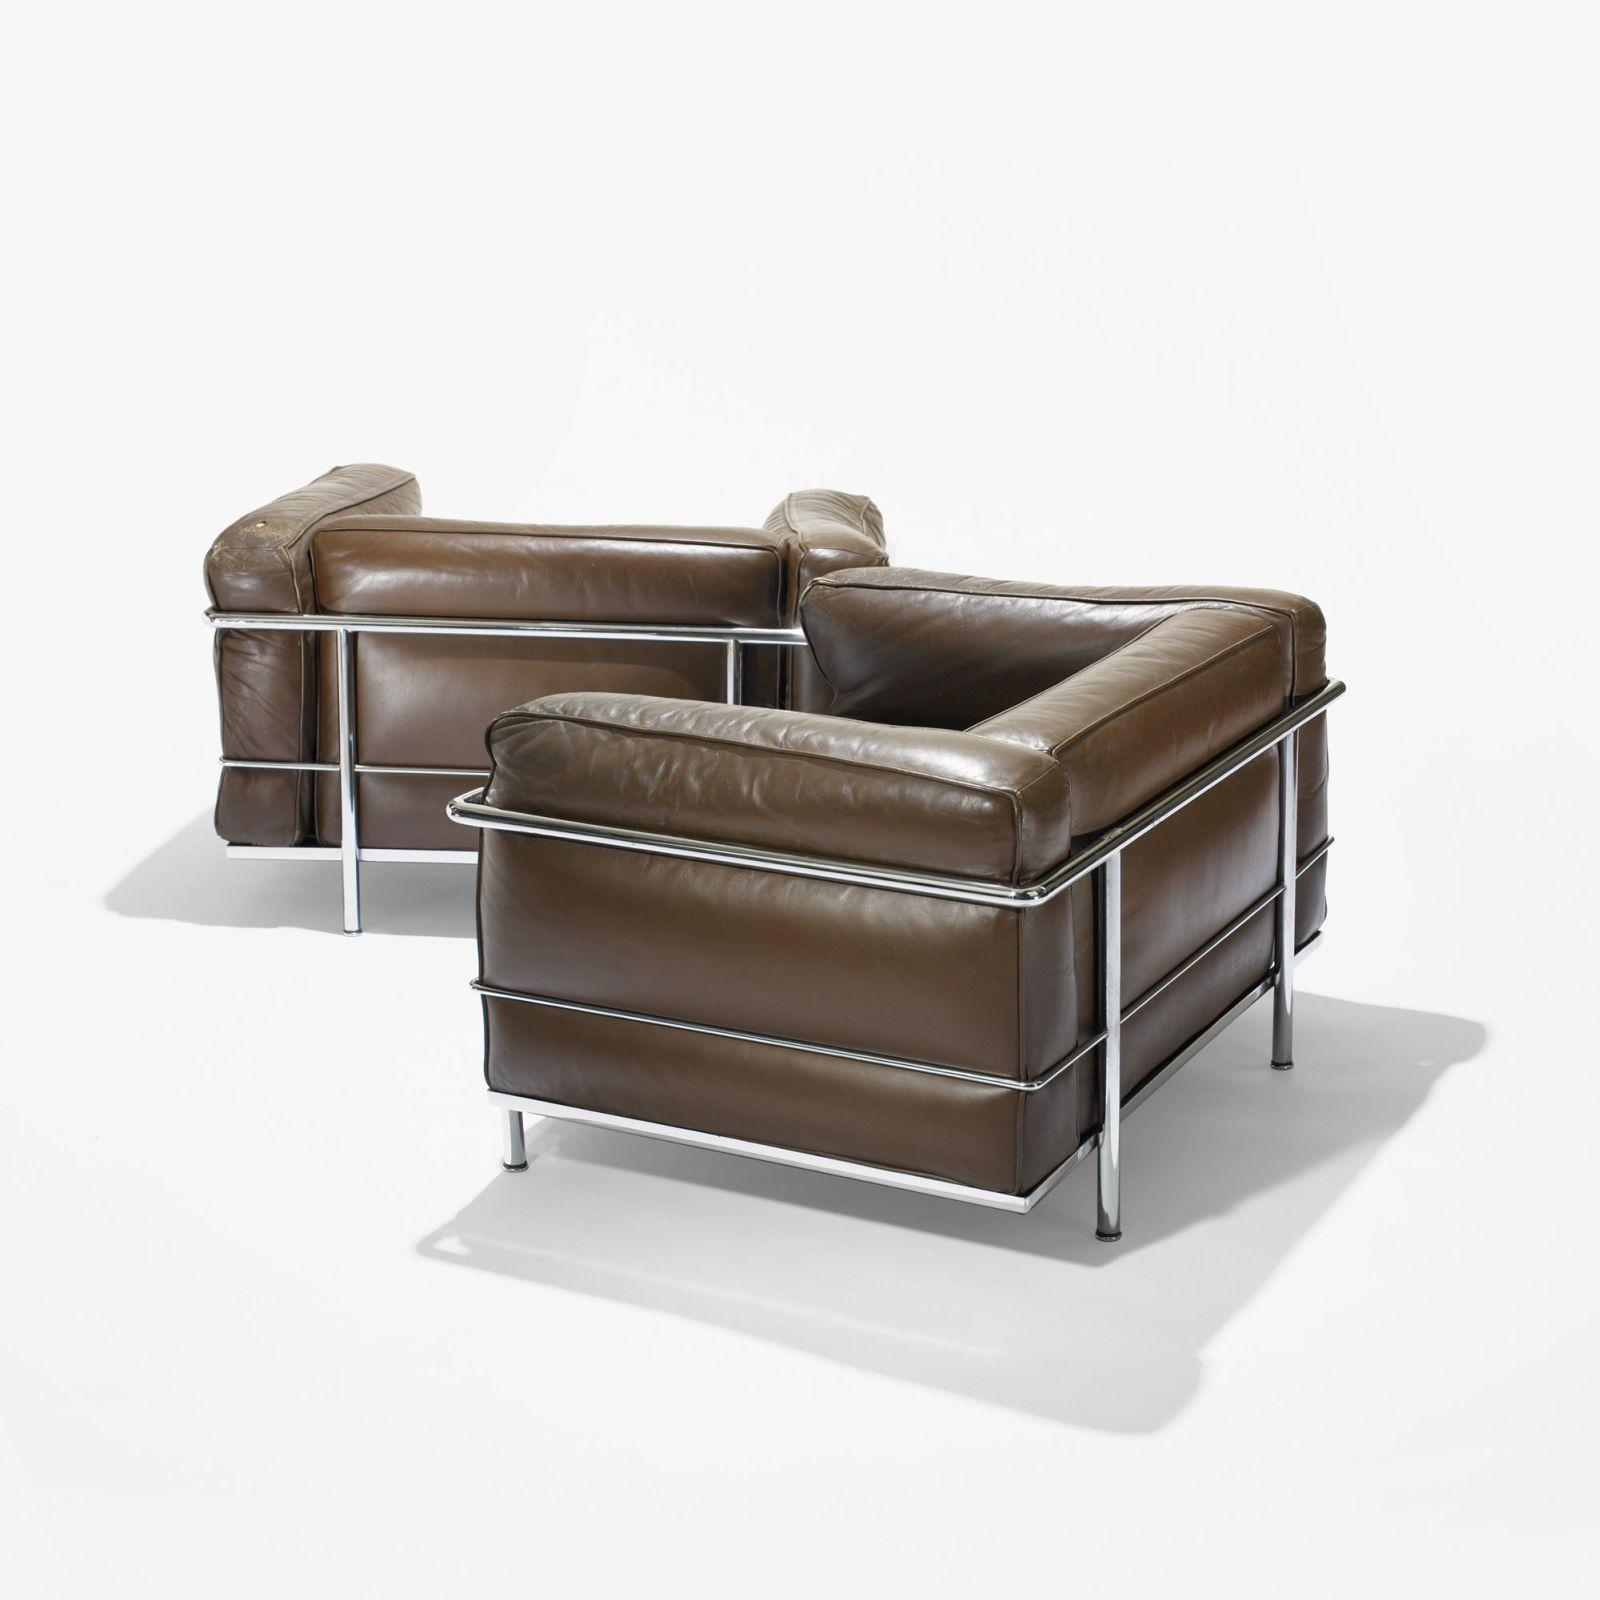 pierre jeanneret charlotte perriand and le corbusier grand comfort lounge chairs pair - Le Corbusier Chair